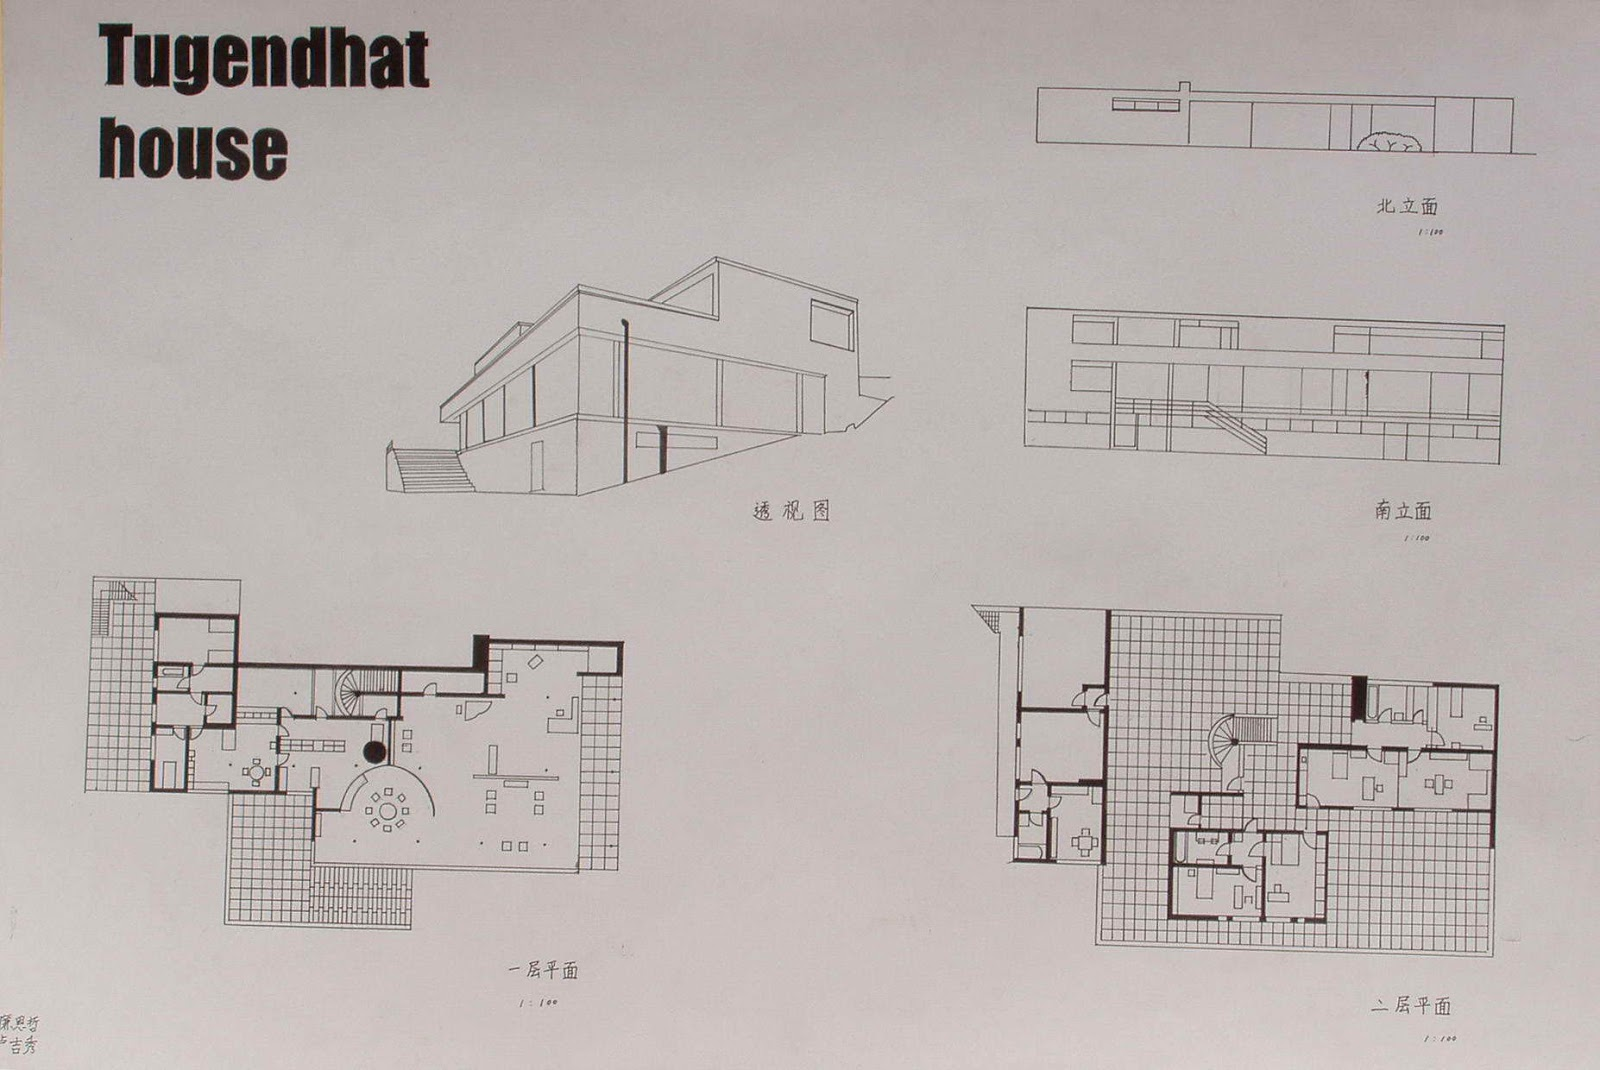 First Floor House Plan Architecture As Aesthetics Villa Tugendhat